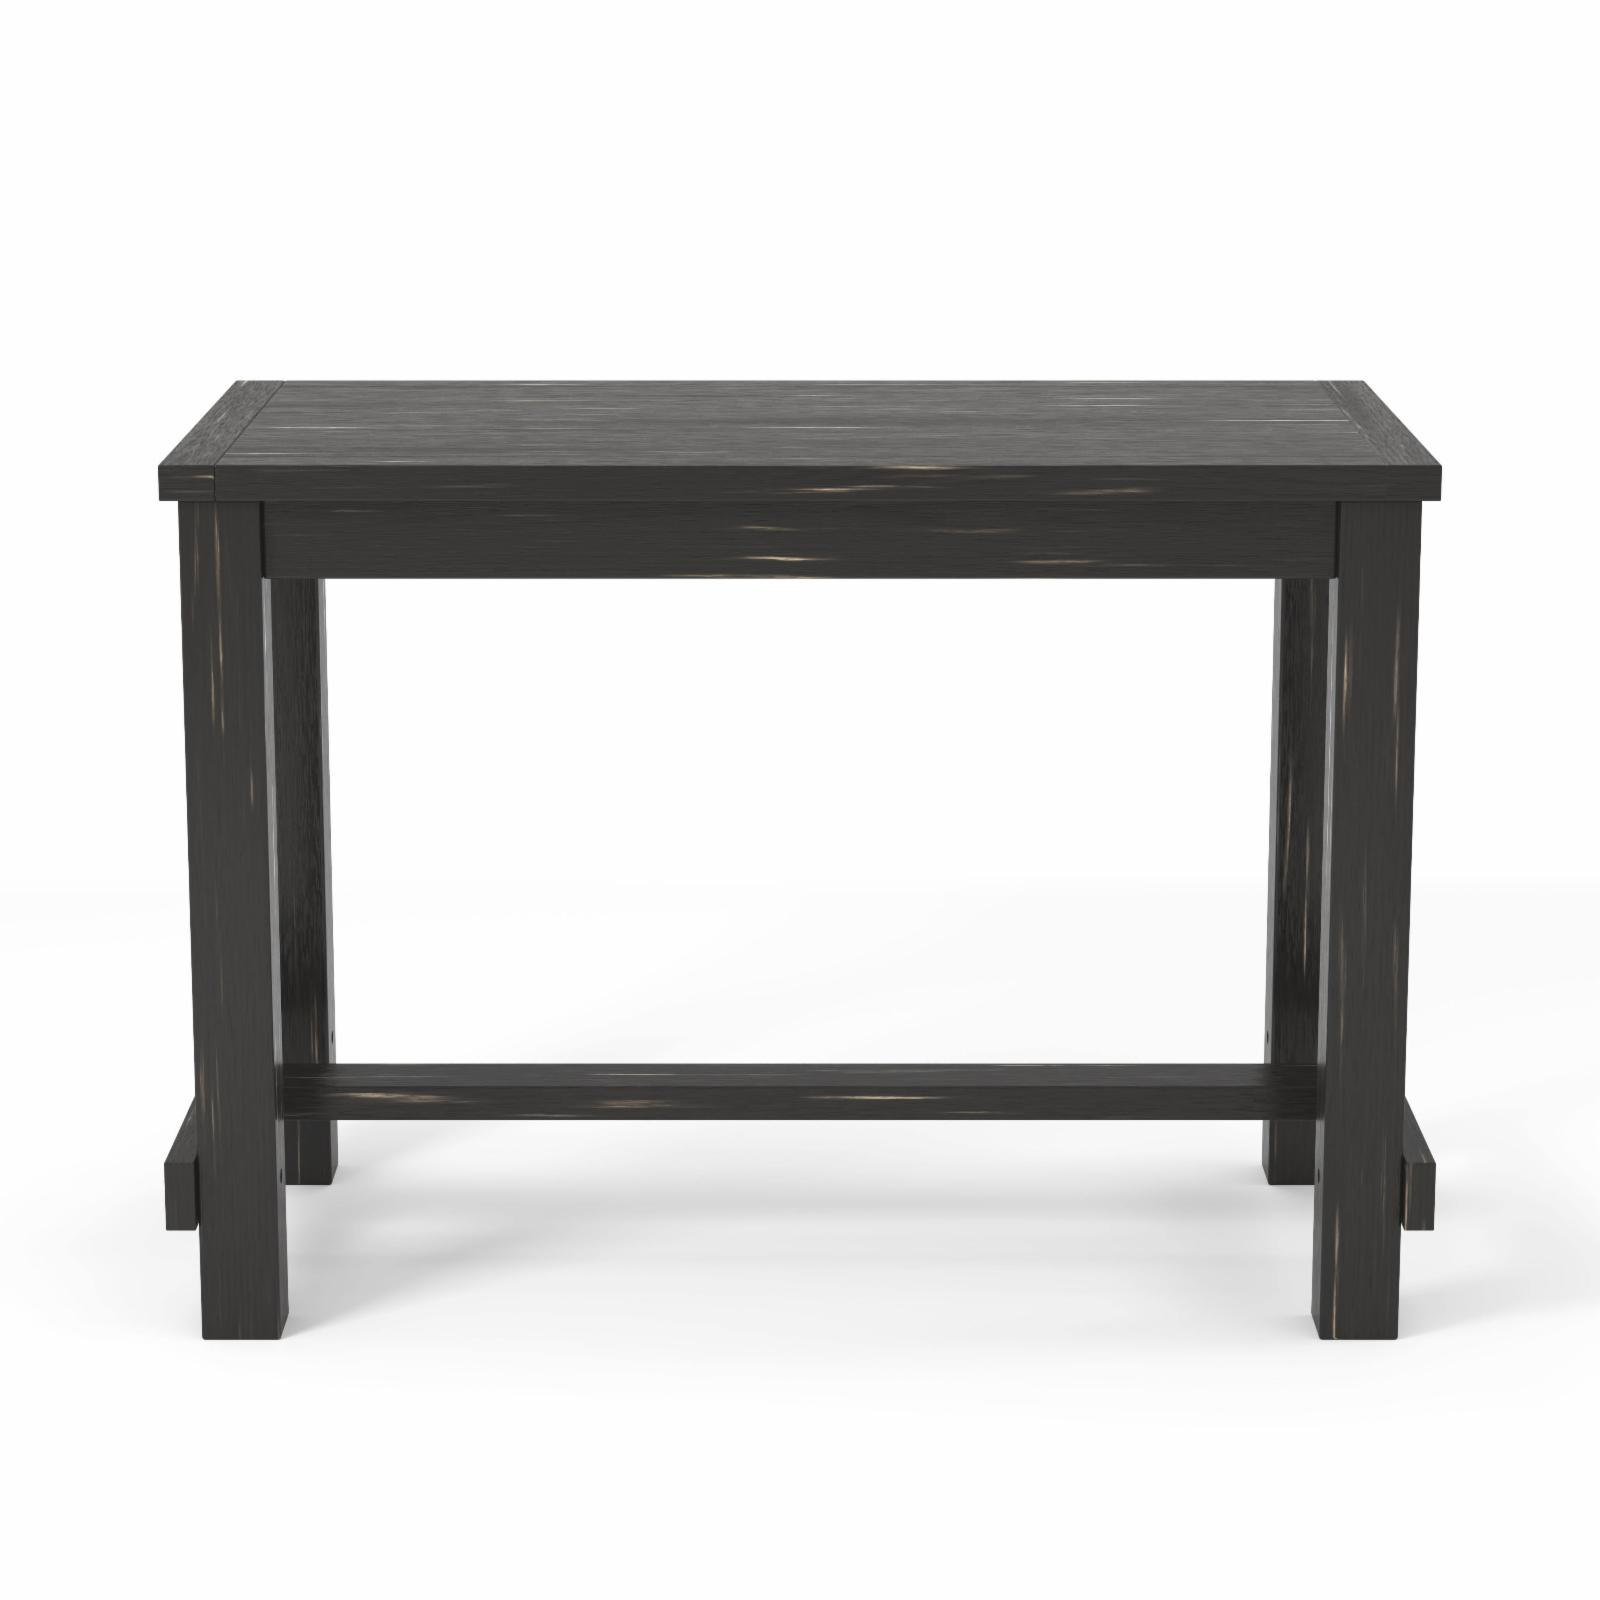 Details About Furniture Of America Helin Ii Bar Height Dining Table